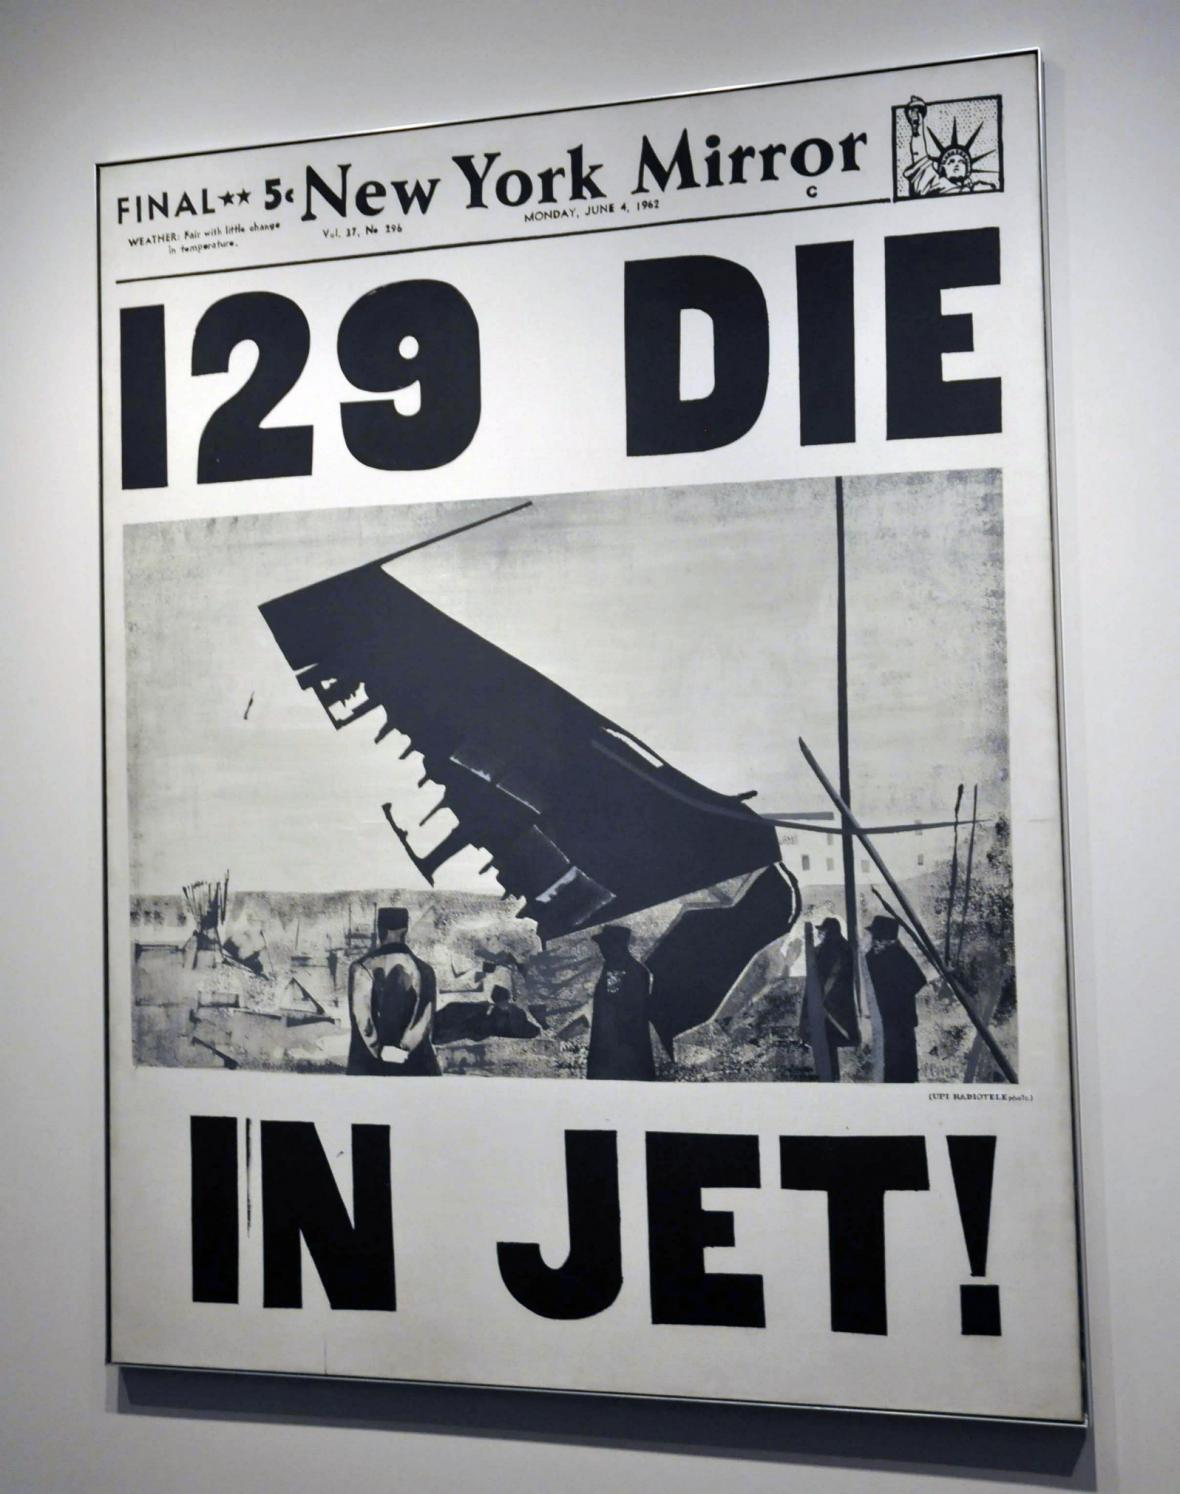 Andy Warhol / 129 Die in Jet